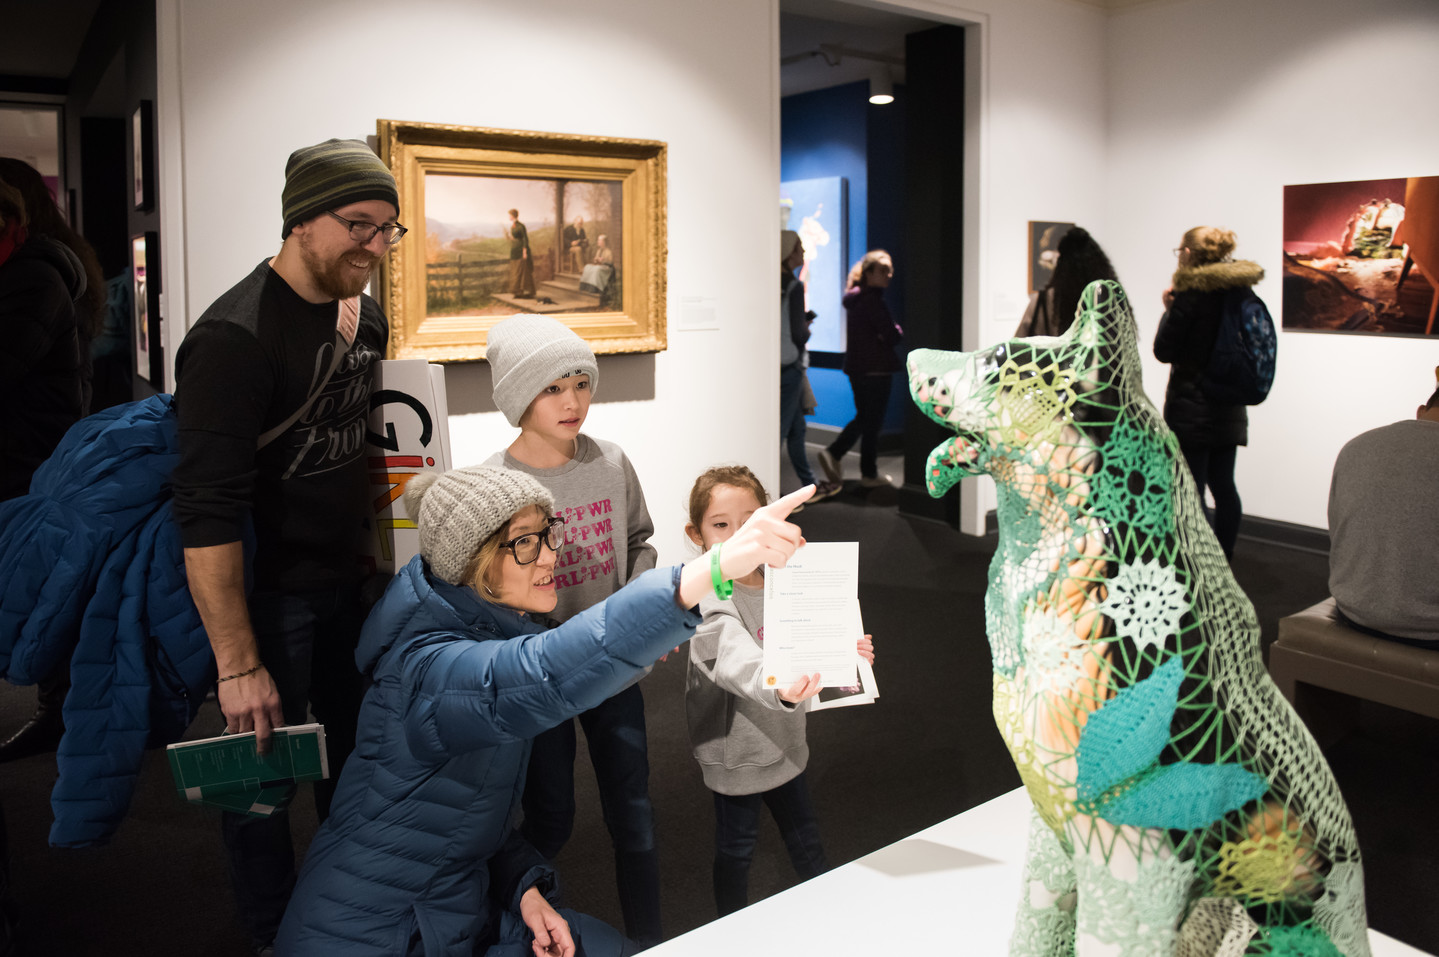 Gallery view of visitors looking at a contemporary sculpture of a dog covered in green knitting in the foreground. A woman kneels pointing at the dog, while a man and two children stand next to her. A gilded framed painting of a woman standing on her porch and looking out into a field hangs on a wall behind the central group and other visitors look at artwork in the distance.